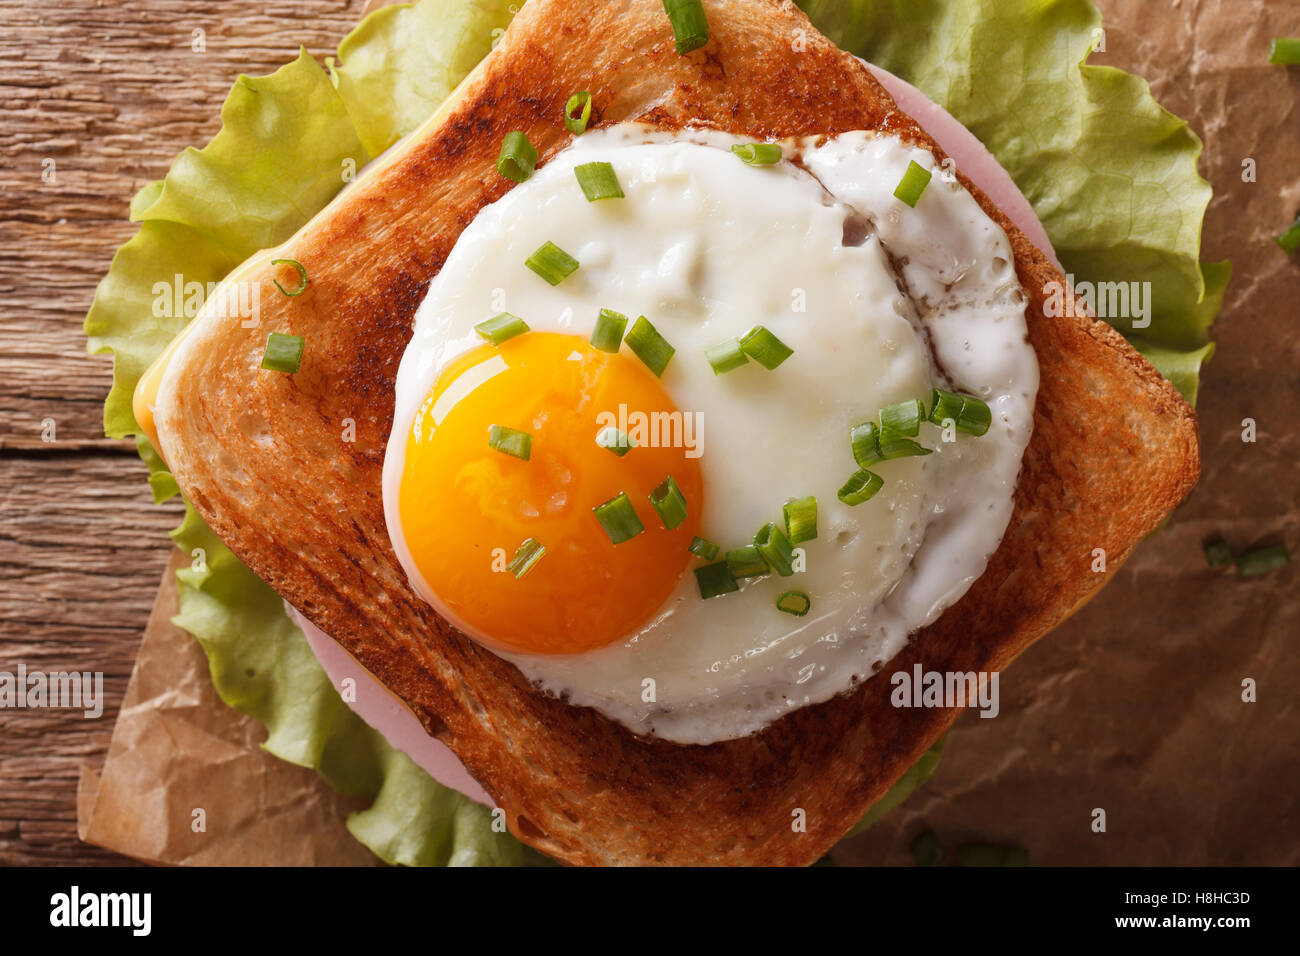 Sandwich with fried egg, ham, onions and cheese close up. horizontal view from above - Stock Image